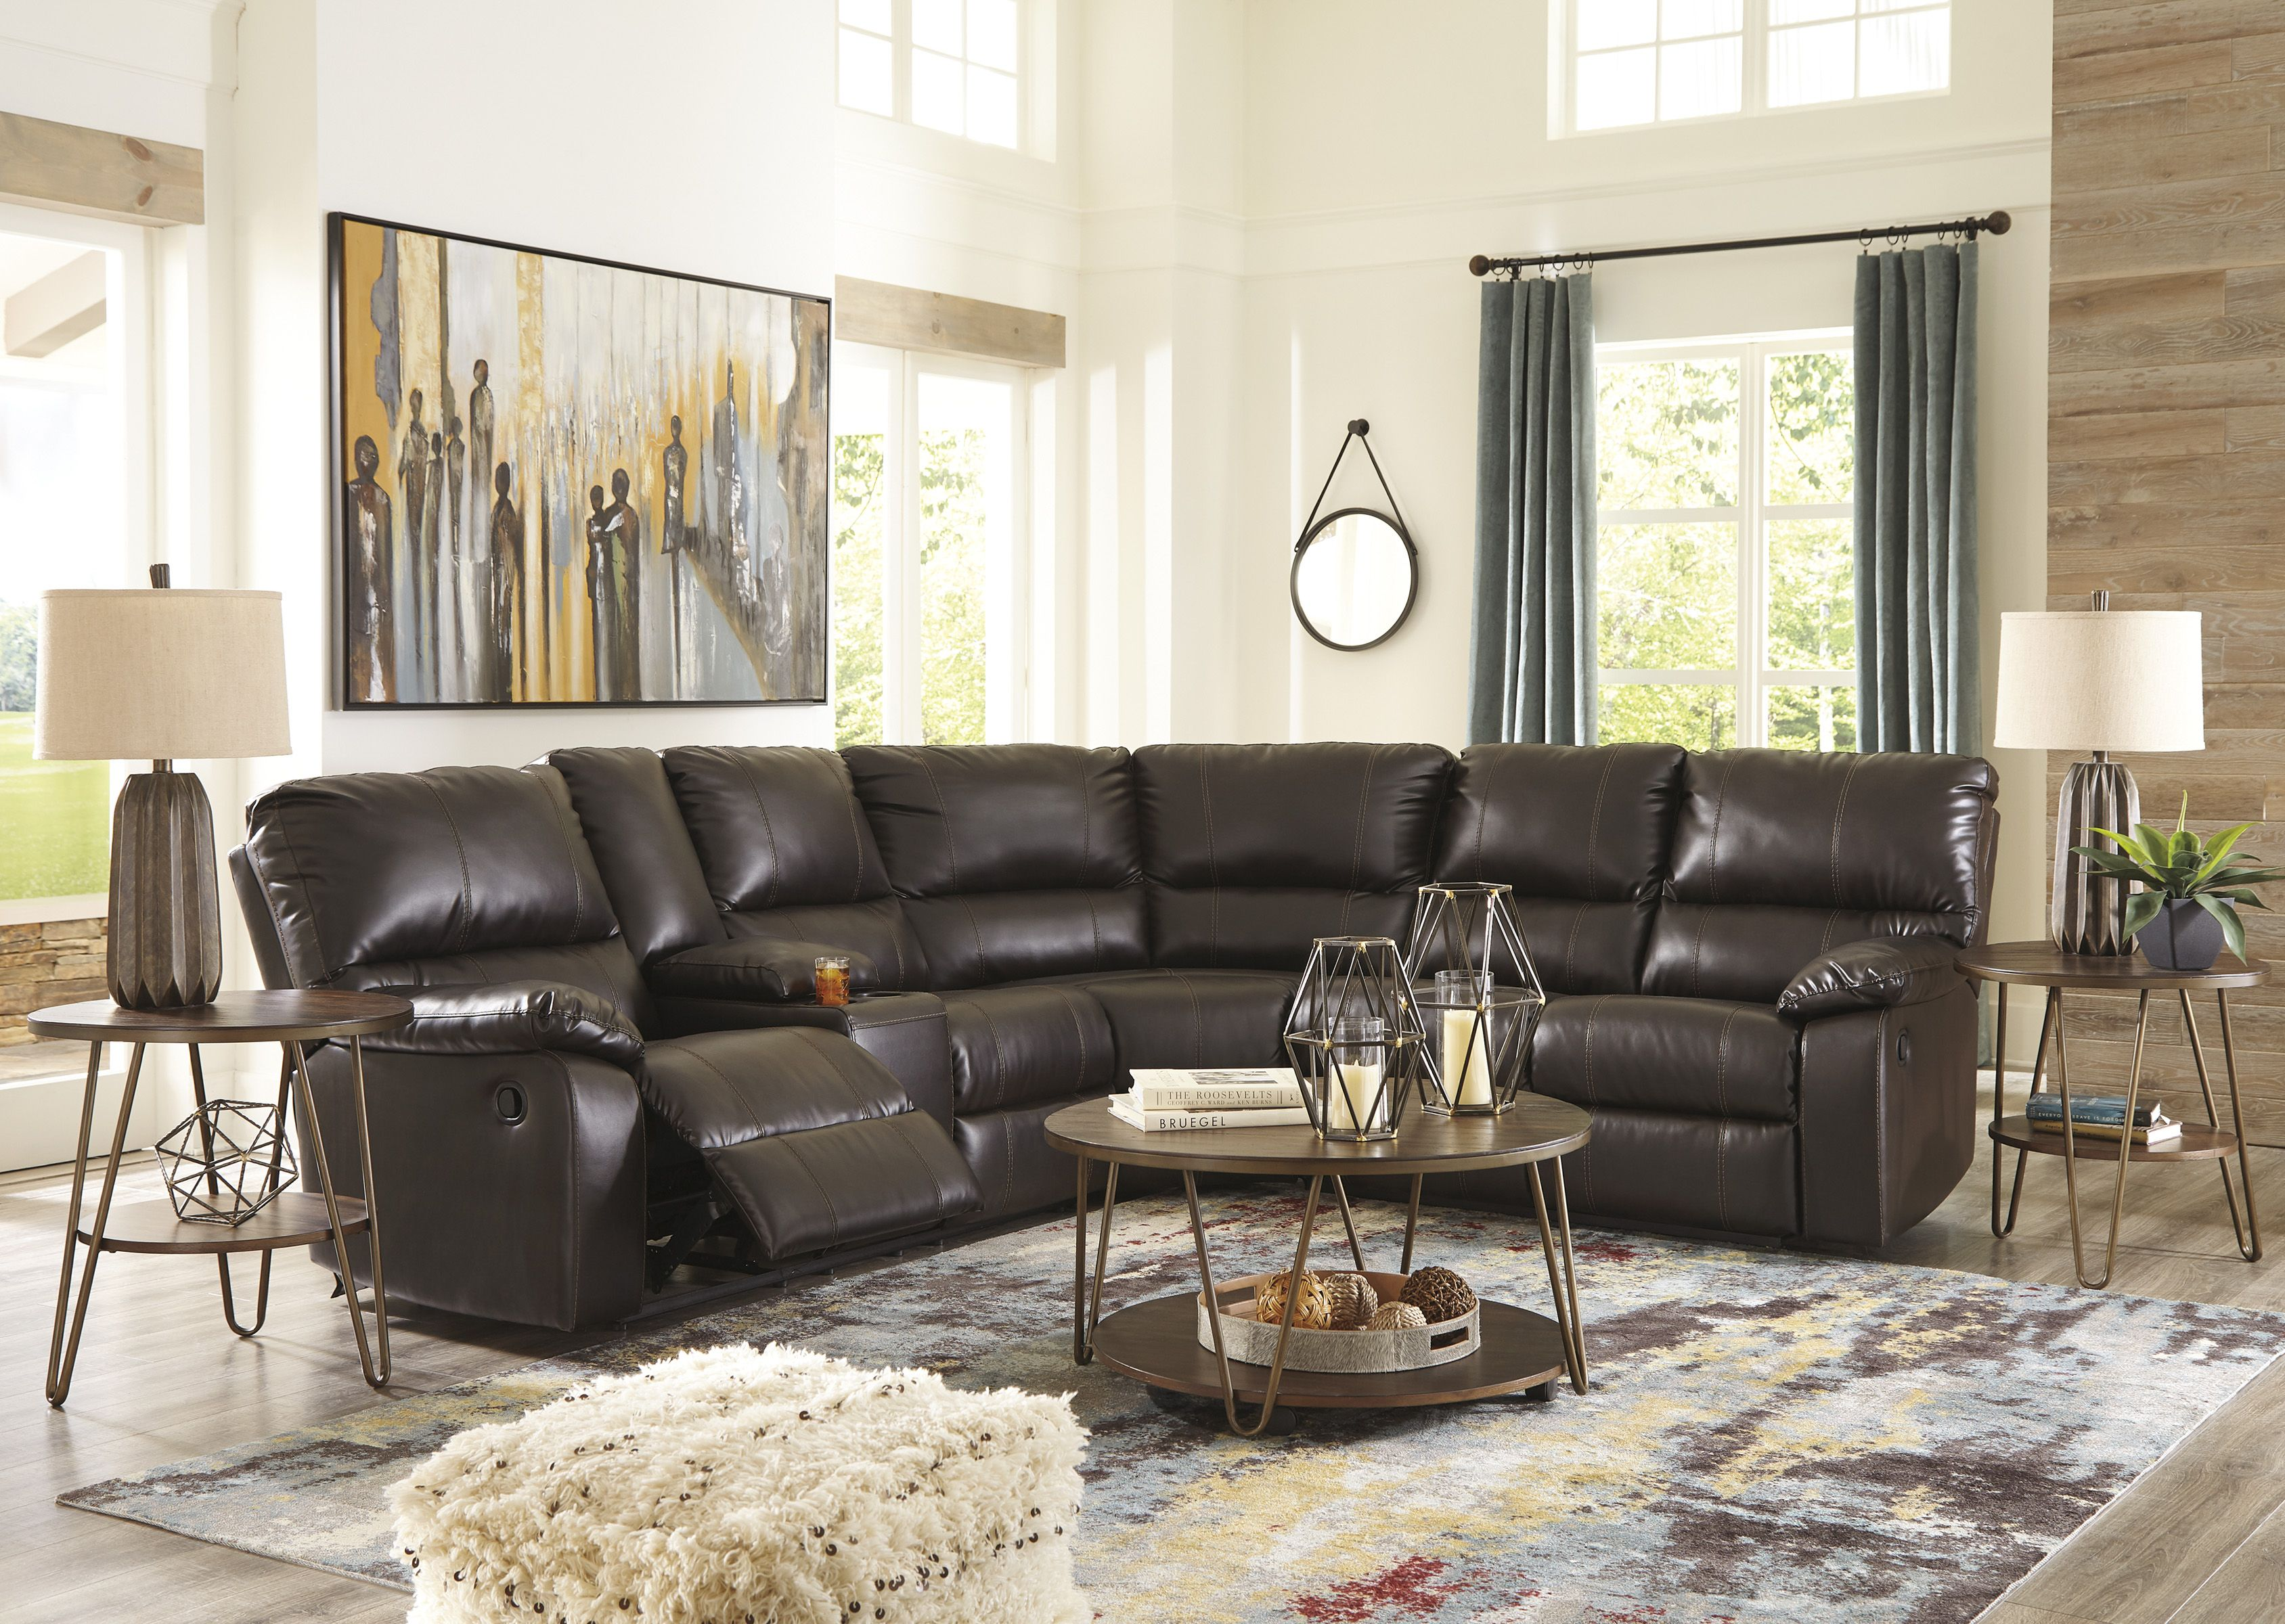 Sectional with dual recliners 1299 item 3400176 casa bella furniture 153 w 29 st hialeah fl